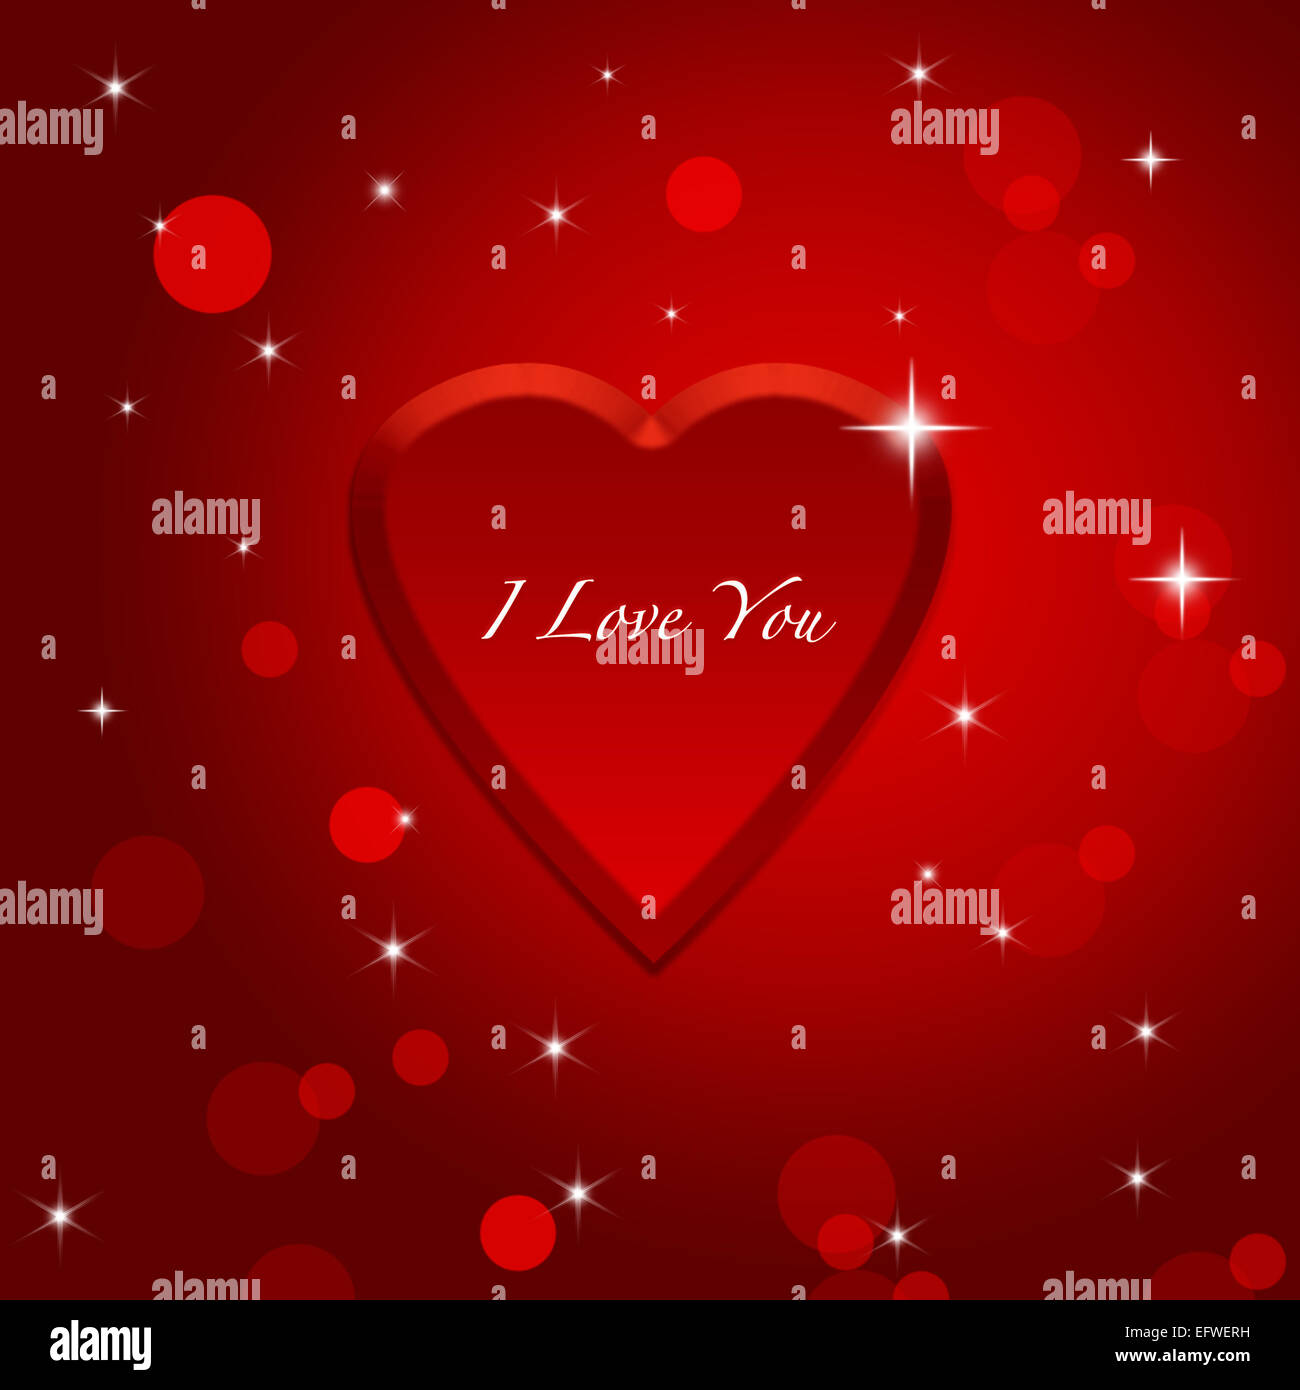 Valentines Day Proposal Greeting Card Stock Photo 78621749 Alamy